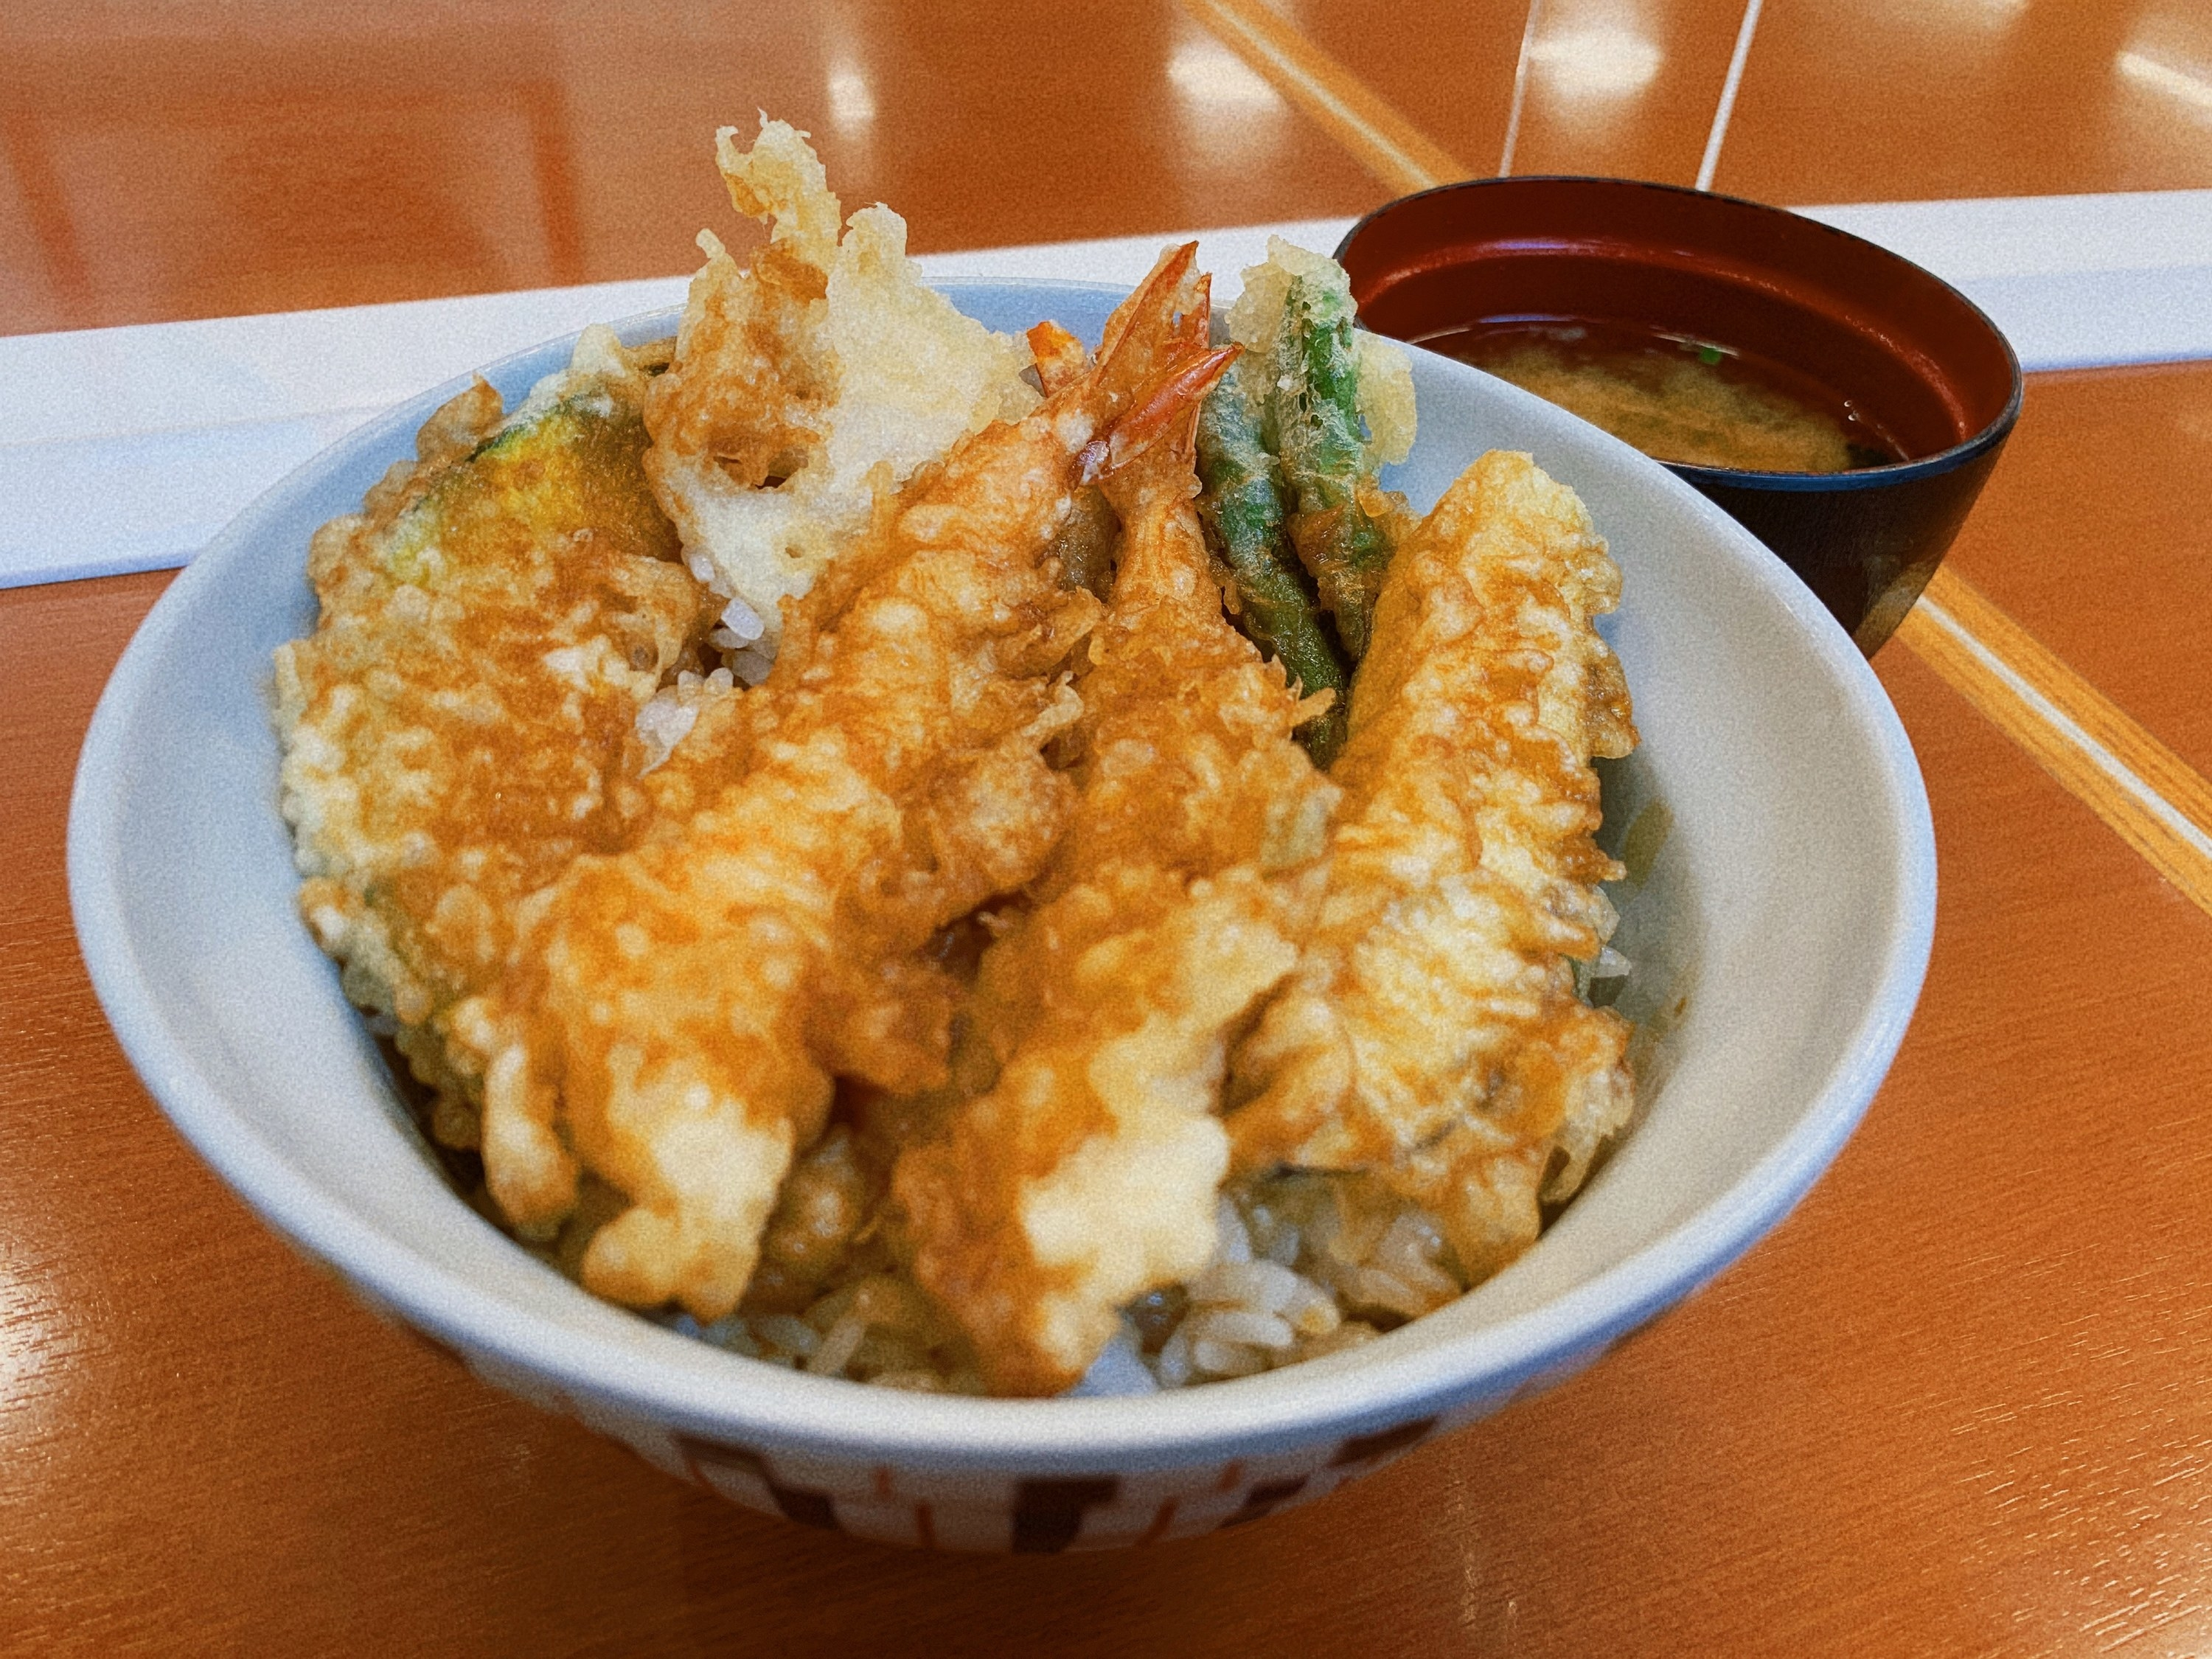 A bowl filled with deep fried seafood and vegetables (tempura) served over rice